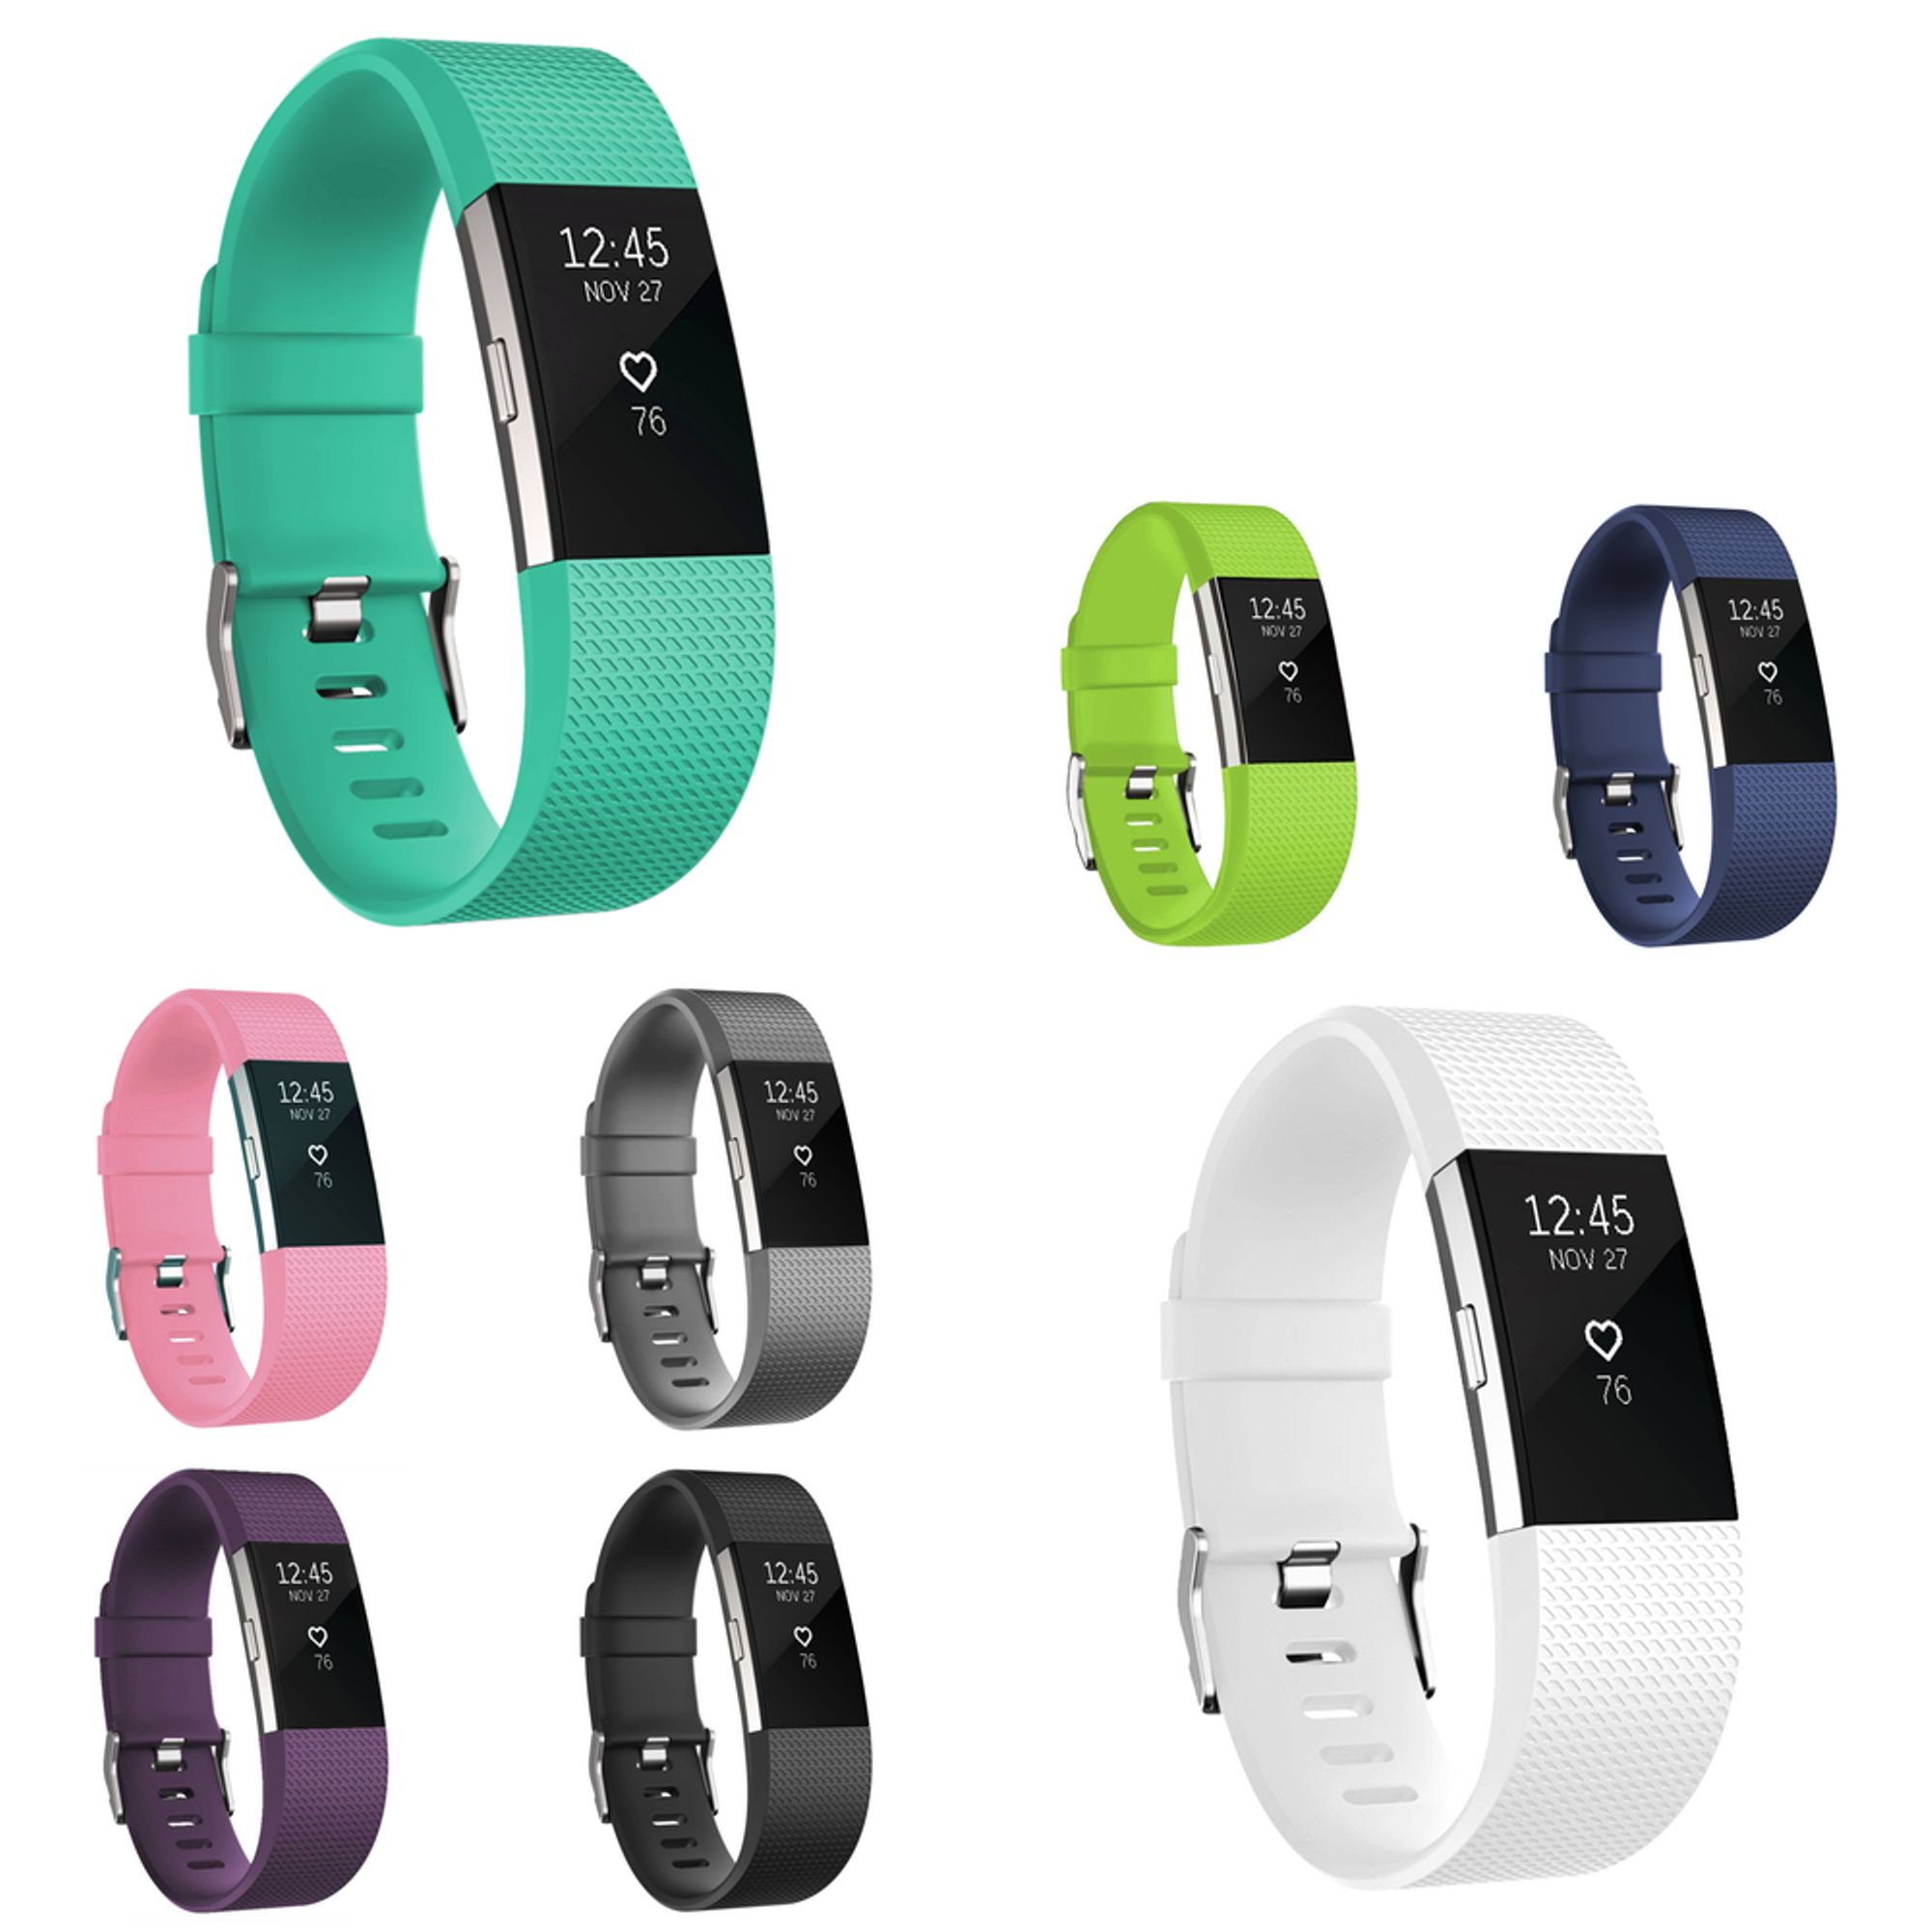 Zodaca 8-pack (Multicolor) Replacement Accessory Soft Silicone Rubber Adjustable Wristband Strap Band with Watchband-style Buckle for Fitbit Charge 2